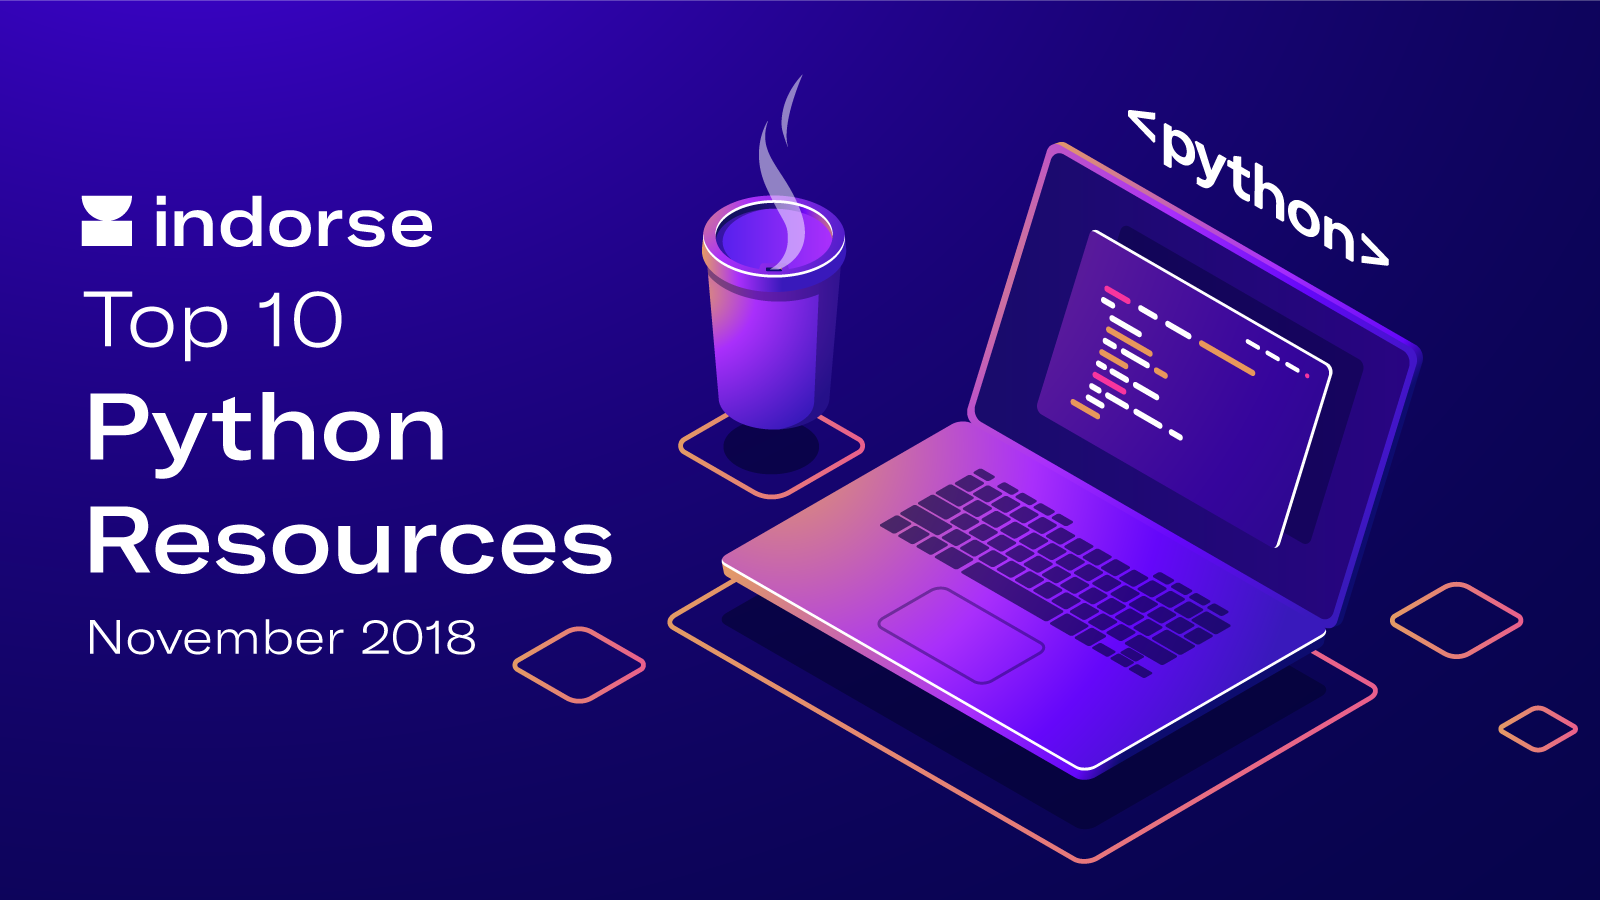 Top 10 Python Resources, November 2018 - Indorse